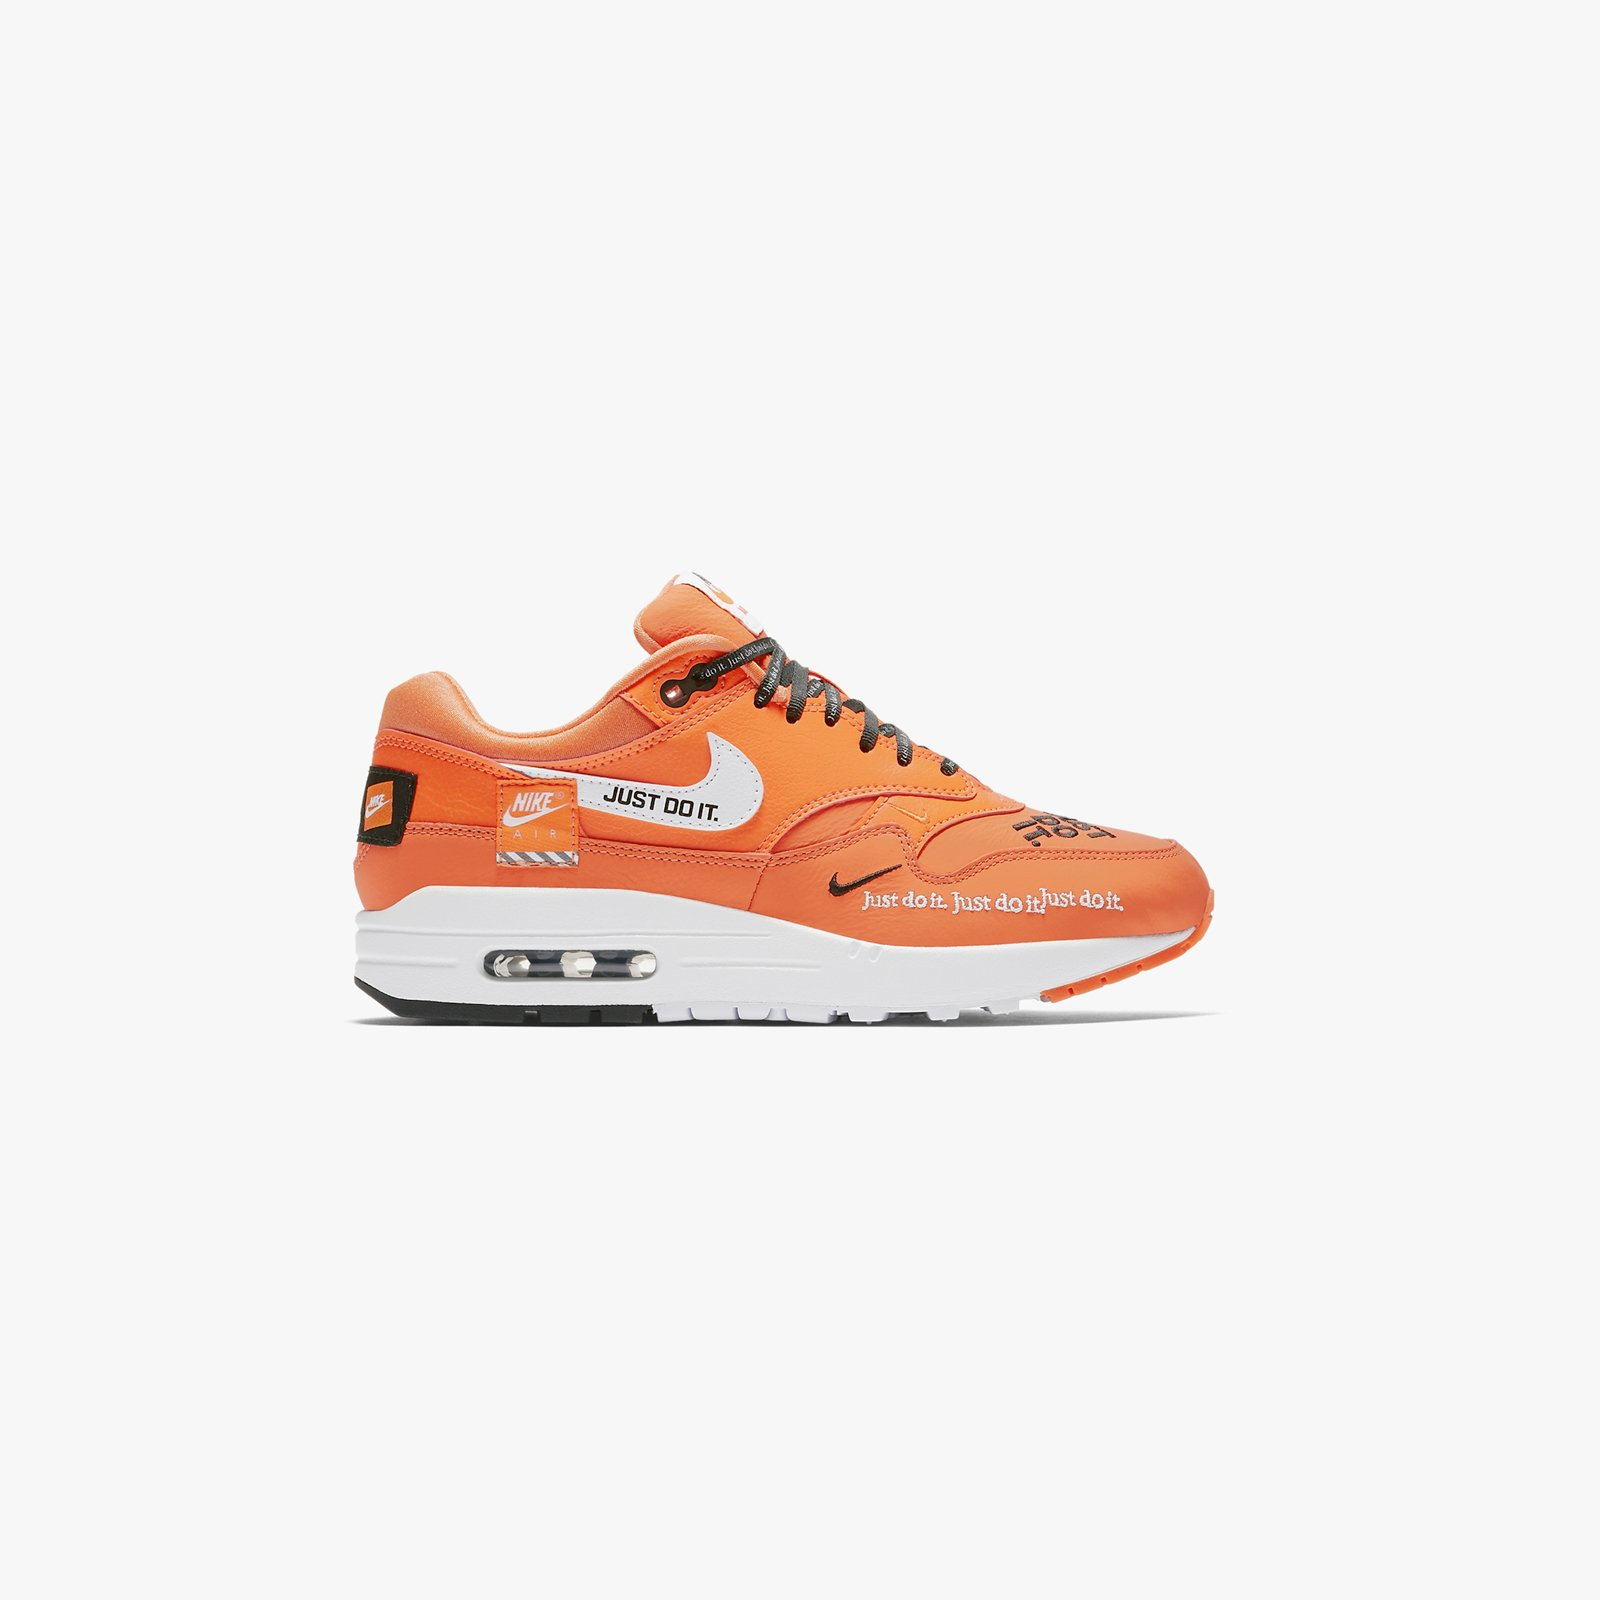 Nike Wmns Air Max 1 LX Just Do It - 917691-800 - Sneakersnstuff ... 6d7b8a0a2